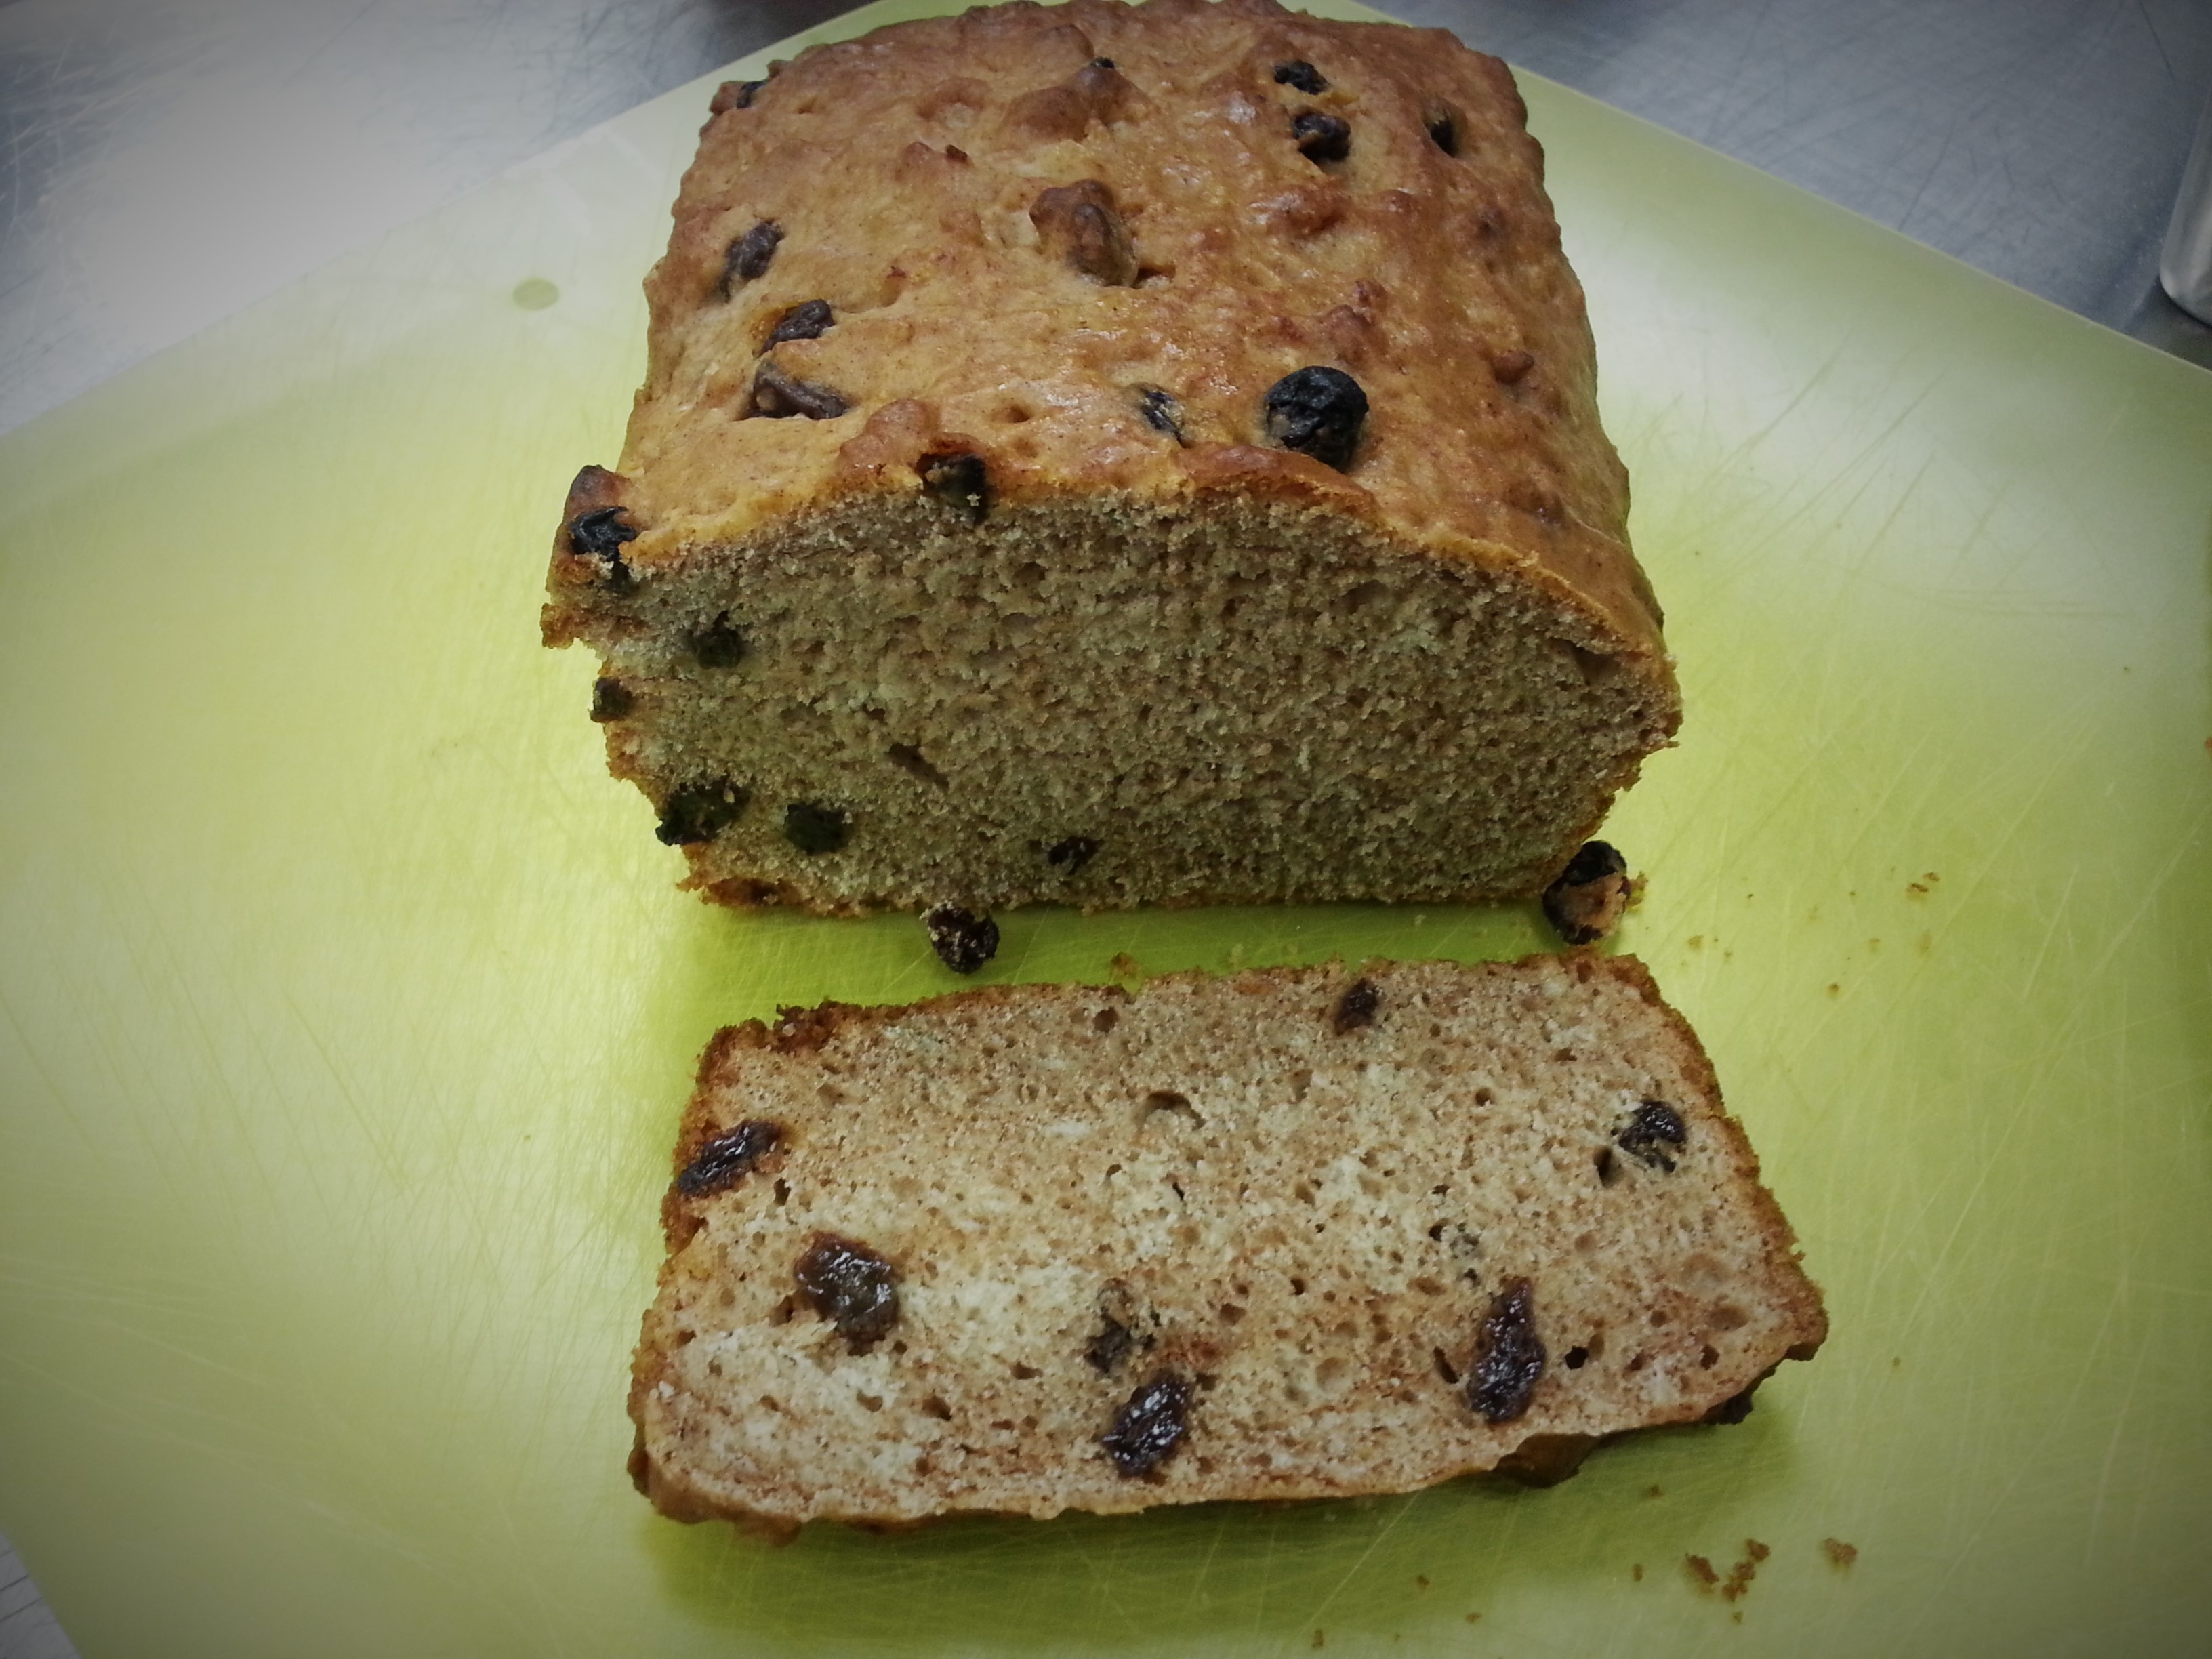 Cinnamon Raisin Beer Batter Bread